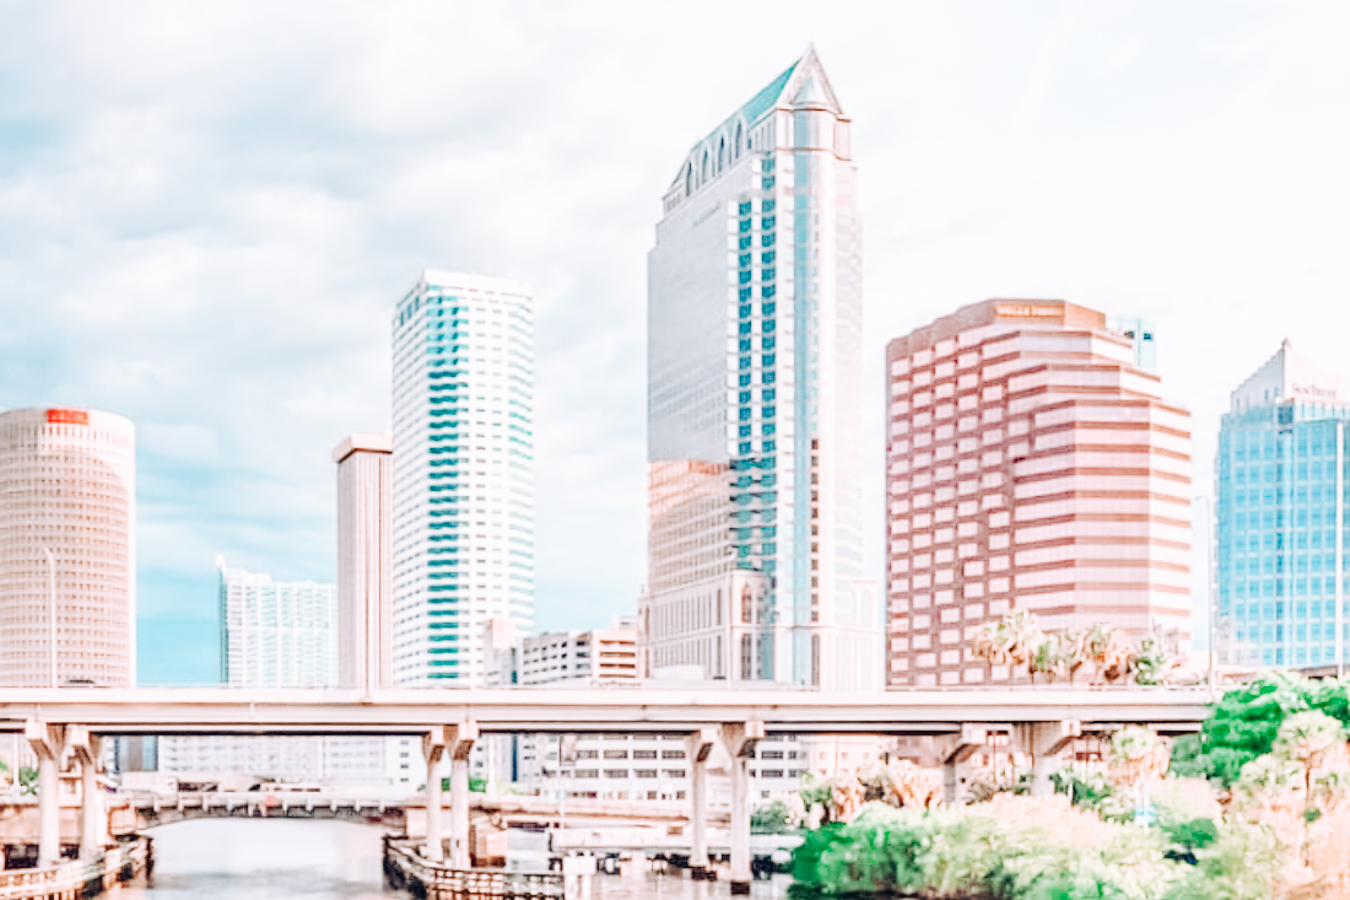 A view of buildings in Tampa